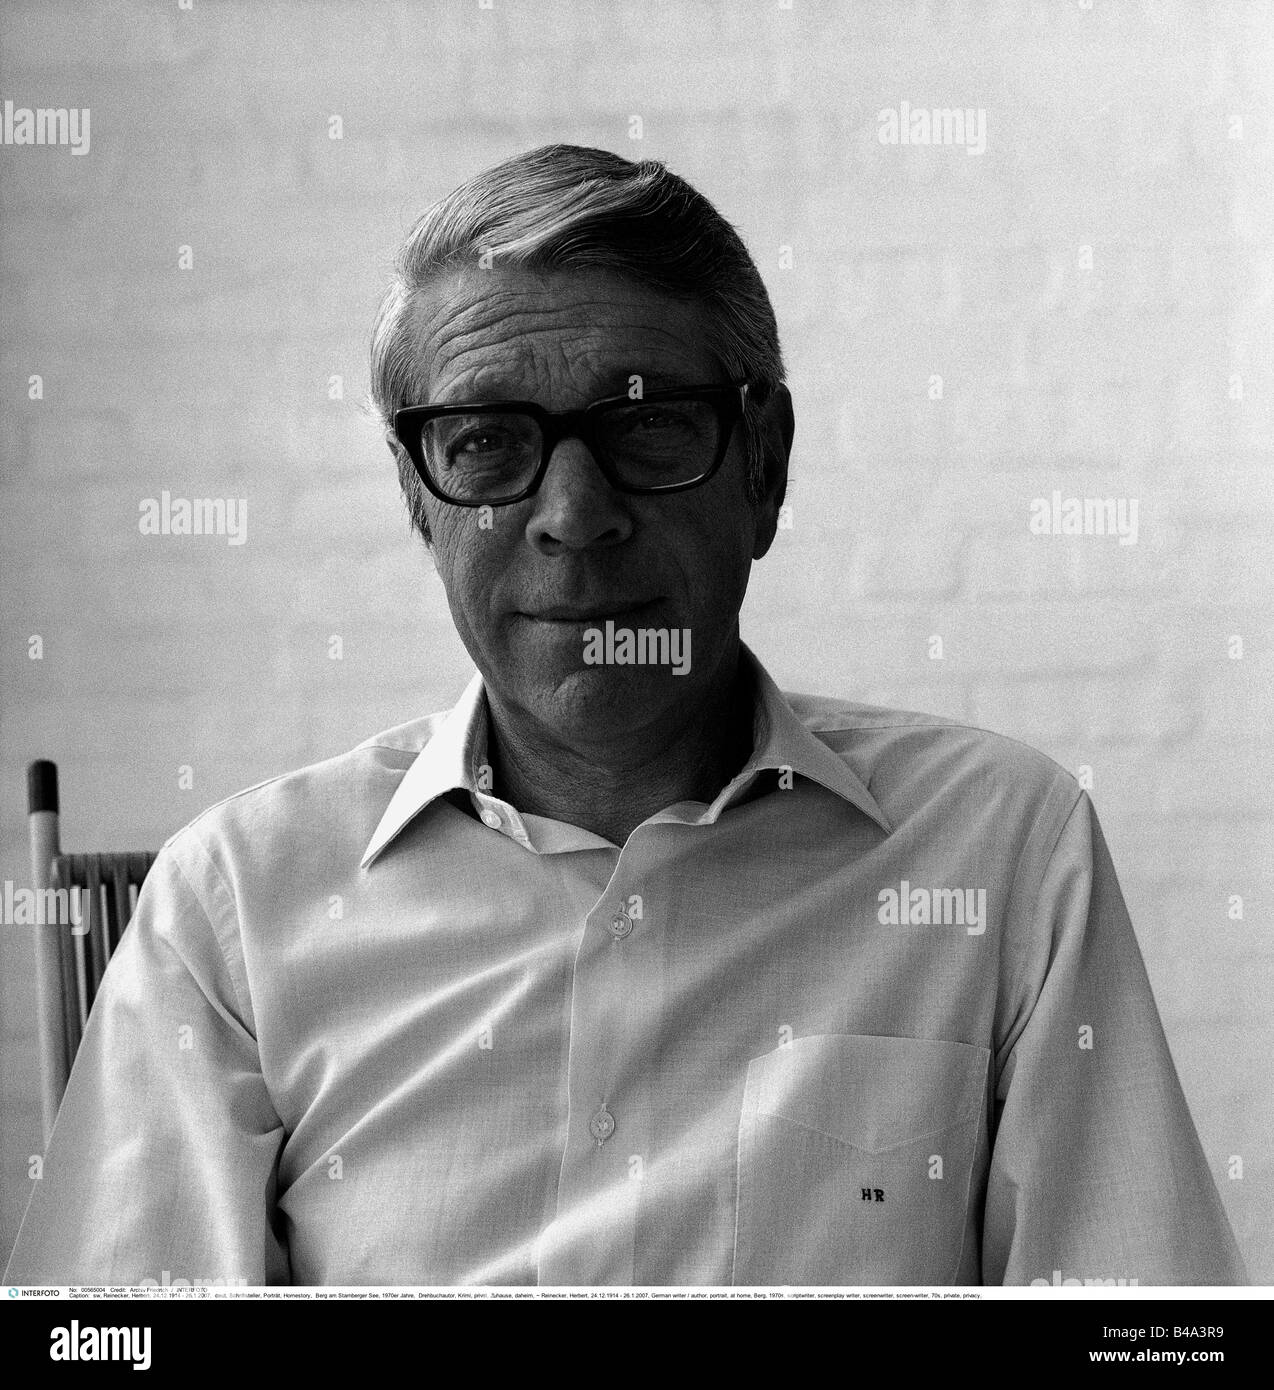 Reinecker, Herbert, 24.12.1914 - 26.1.2007, German writer / author, portrait, at home, Berg, 1970s, Additional-Rights Stock Photo